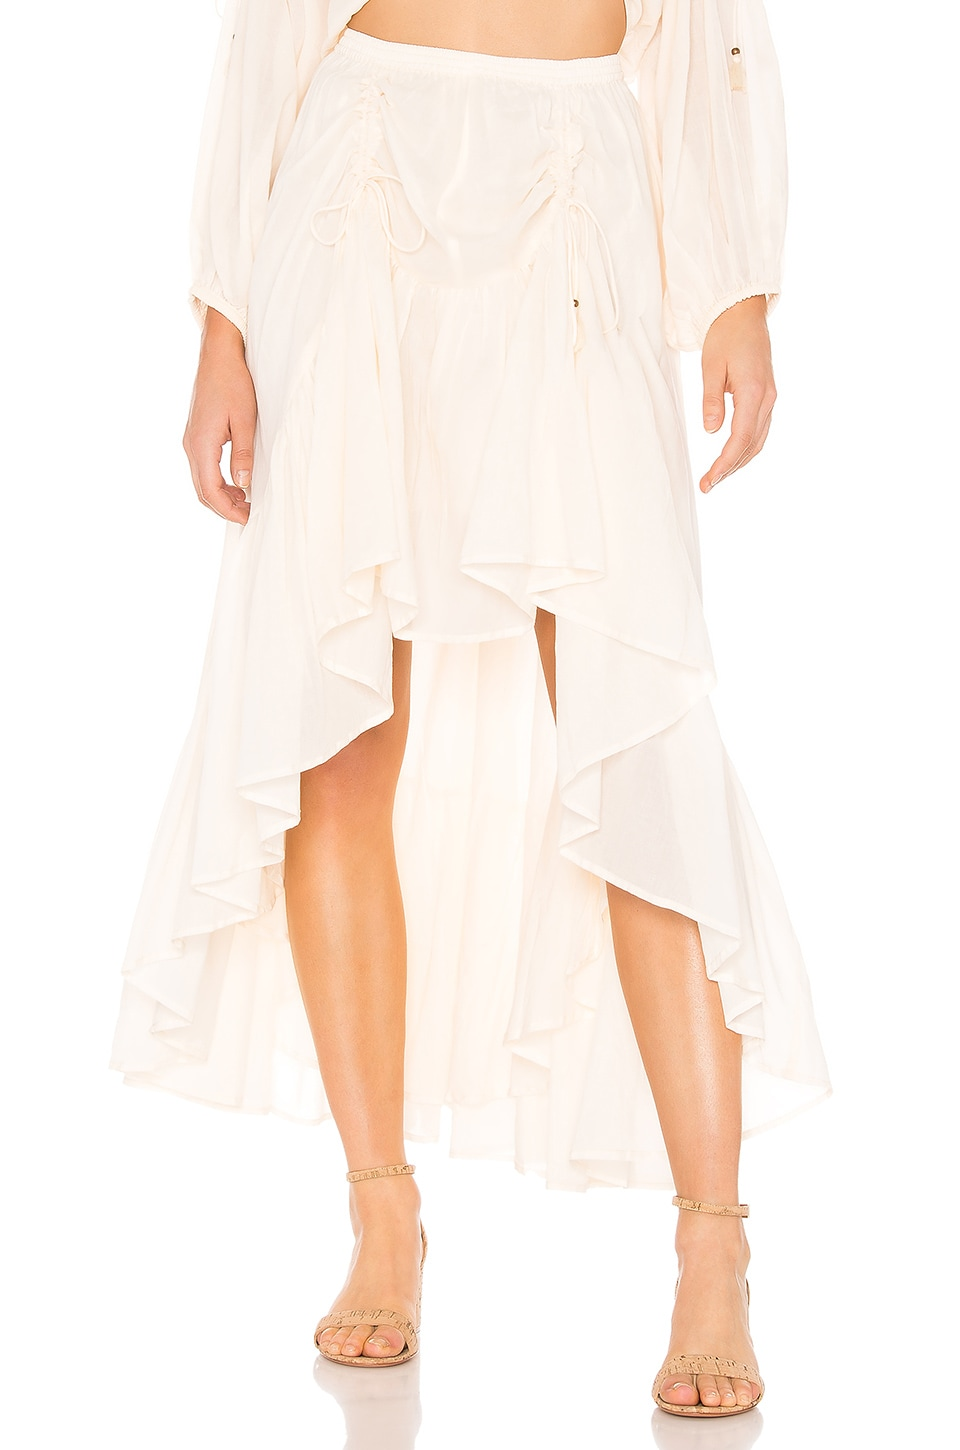 Spell & The Gypsy Collective Seashell Organic Ruched Skirt in Ivory